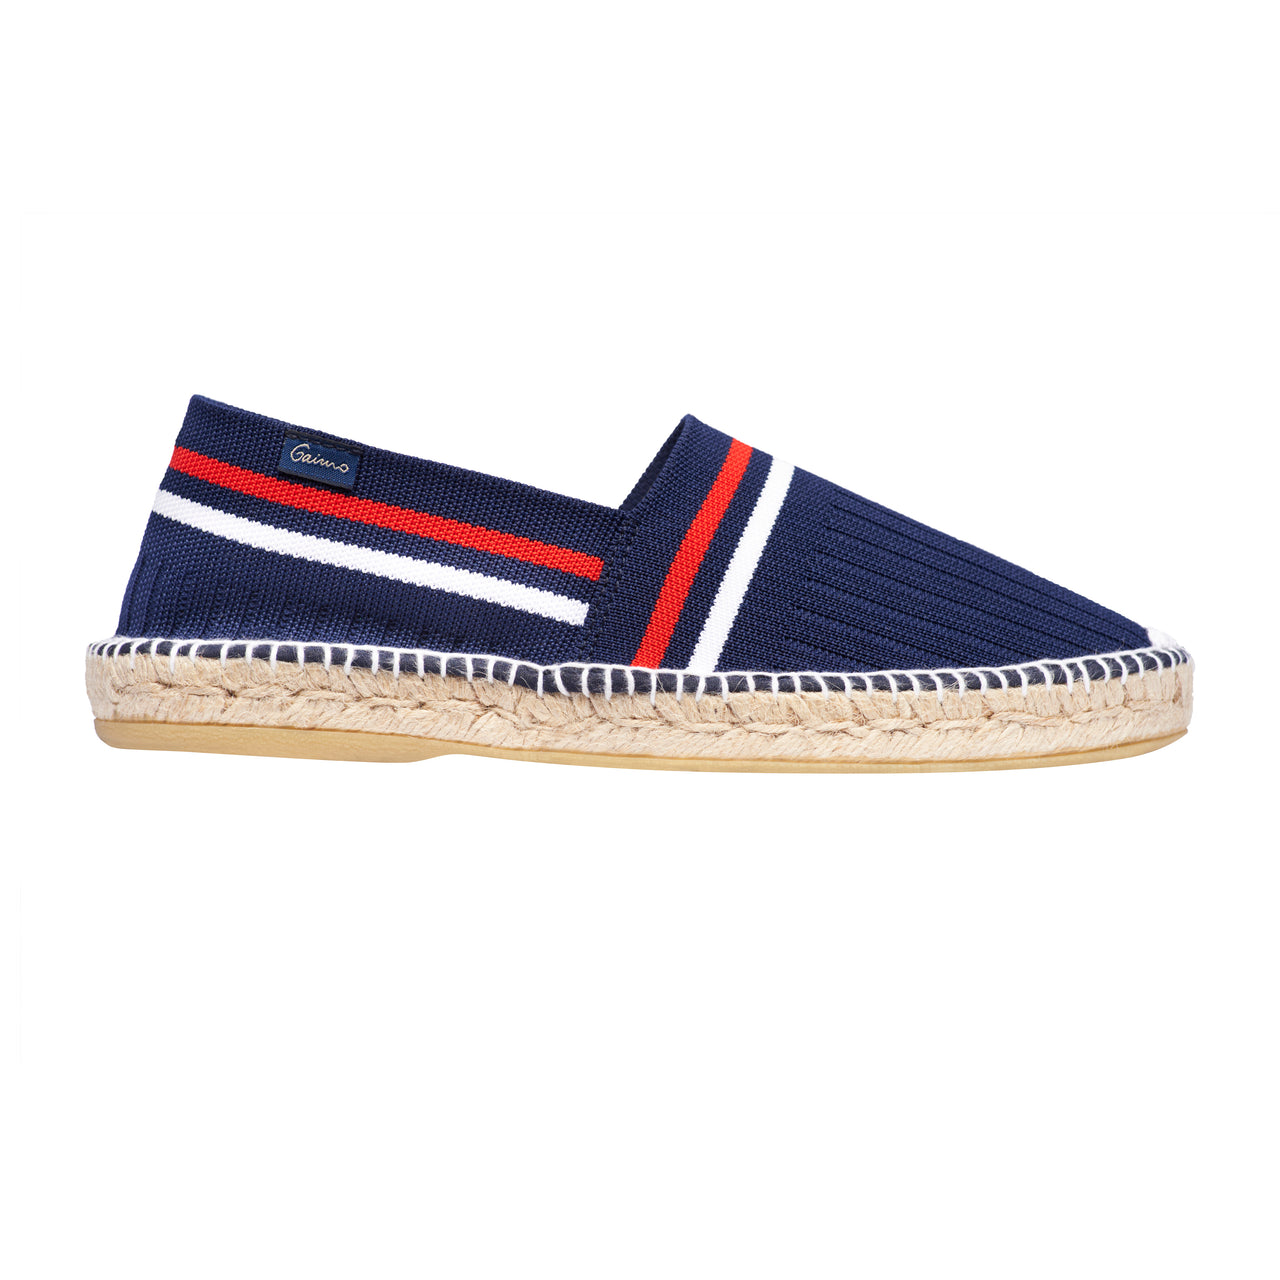 WISH NAVY Men espadrilles - Badt and Co - singapore